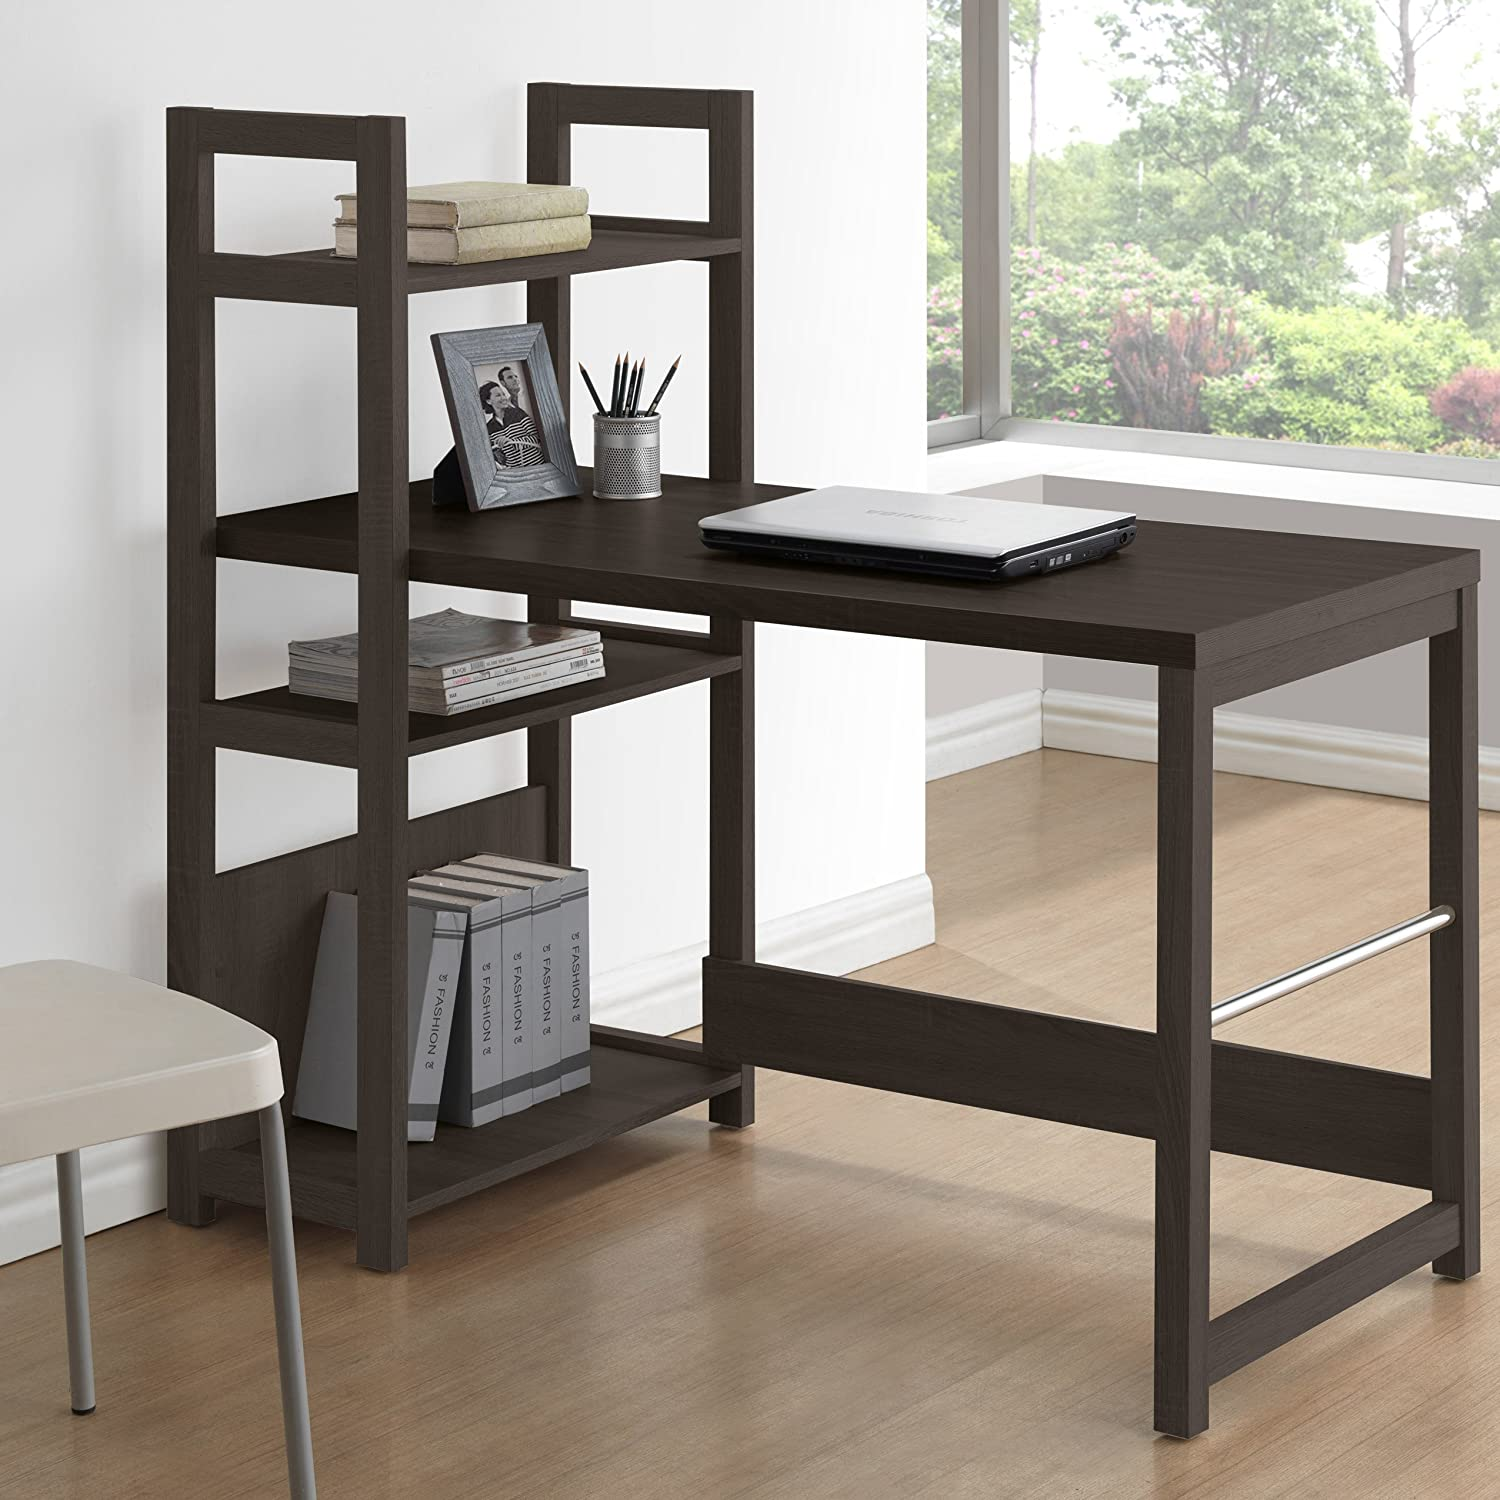 storage ideas wall out mounted bookshelf small under black computer wood fold desk